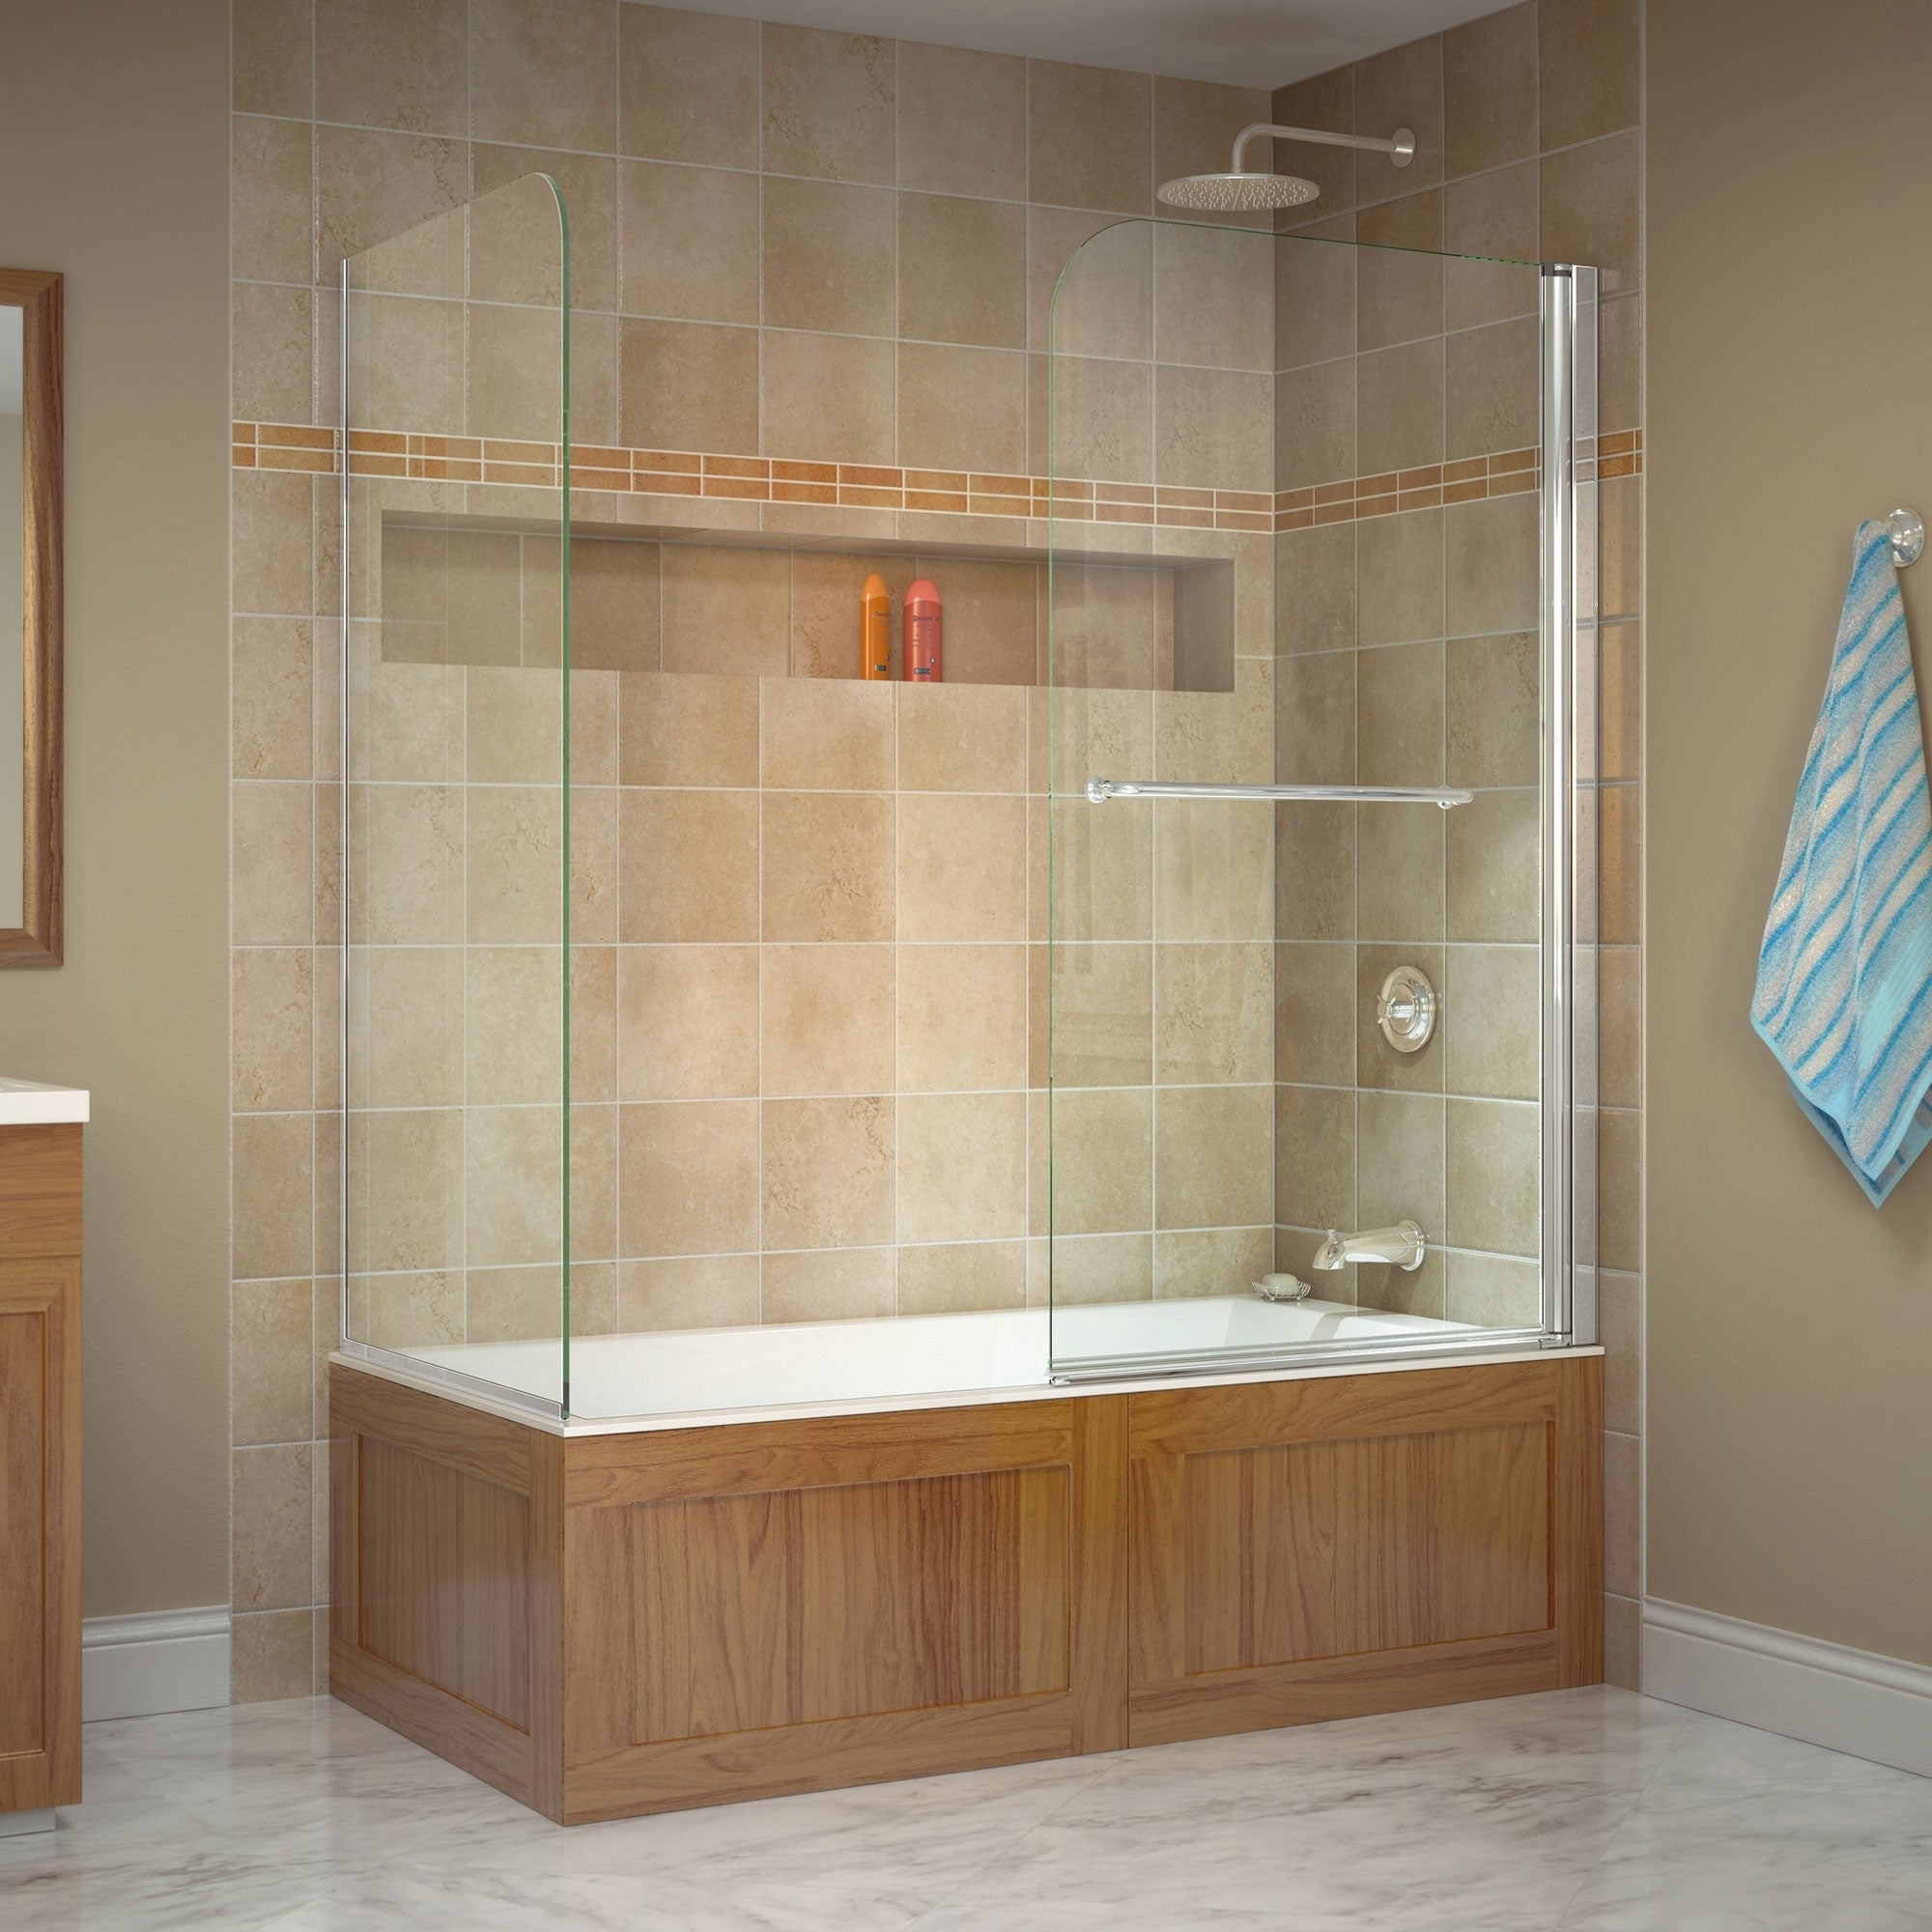 Dreamline Aqua Swing 56 60 In W X 30 In D X 58 In H Tub Door With Return Panel 30 X 56 60